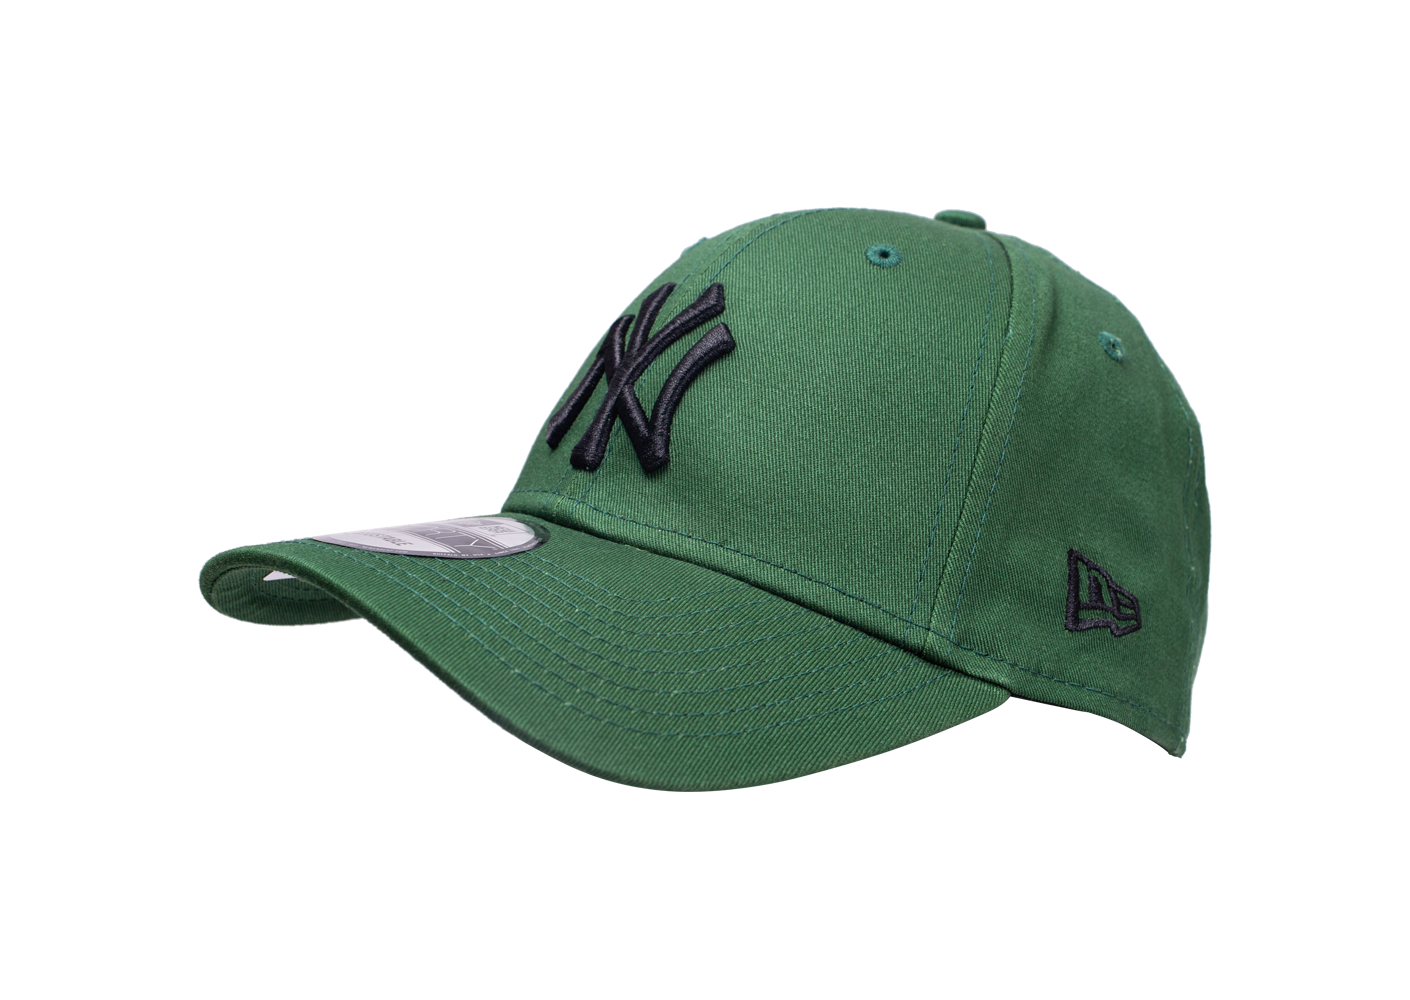 New Era Mixte Casquette 9forty League Essential Verte Et Noire 6 7/8